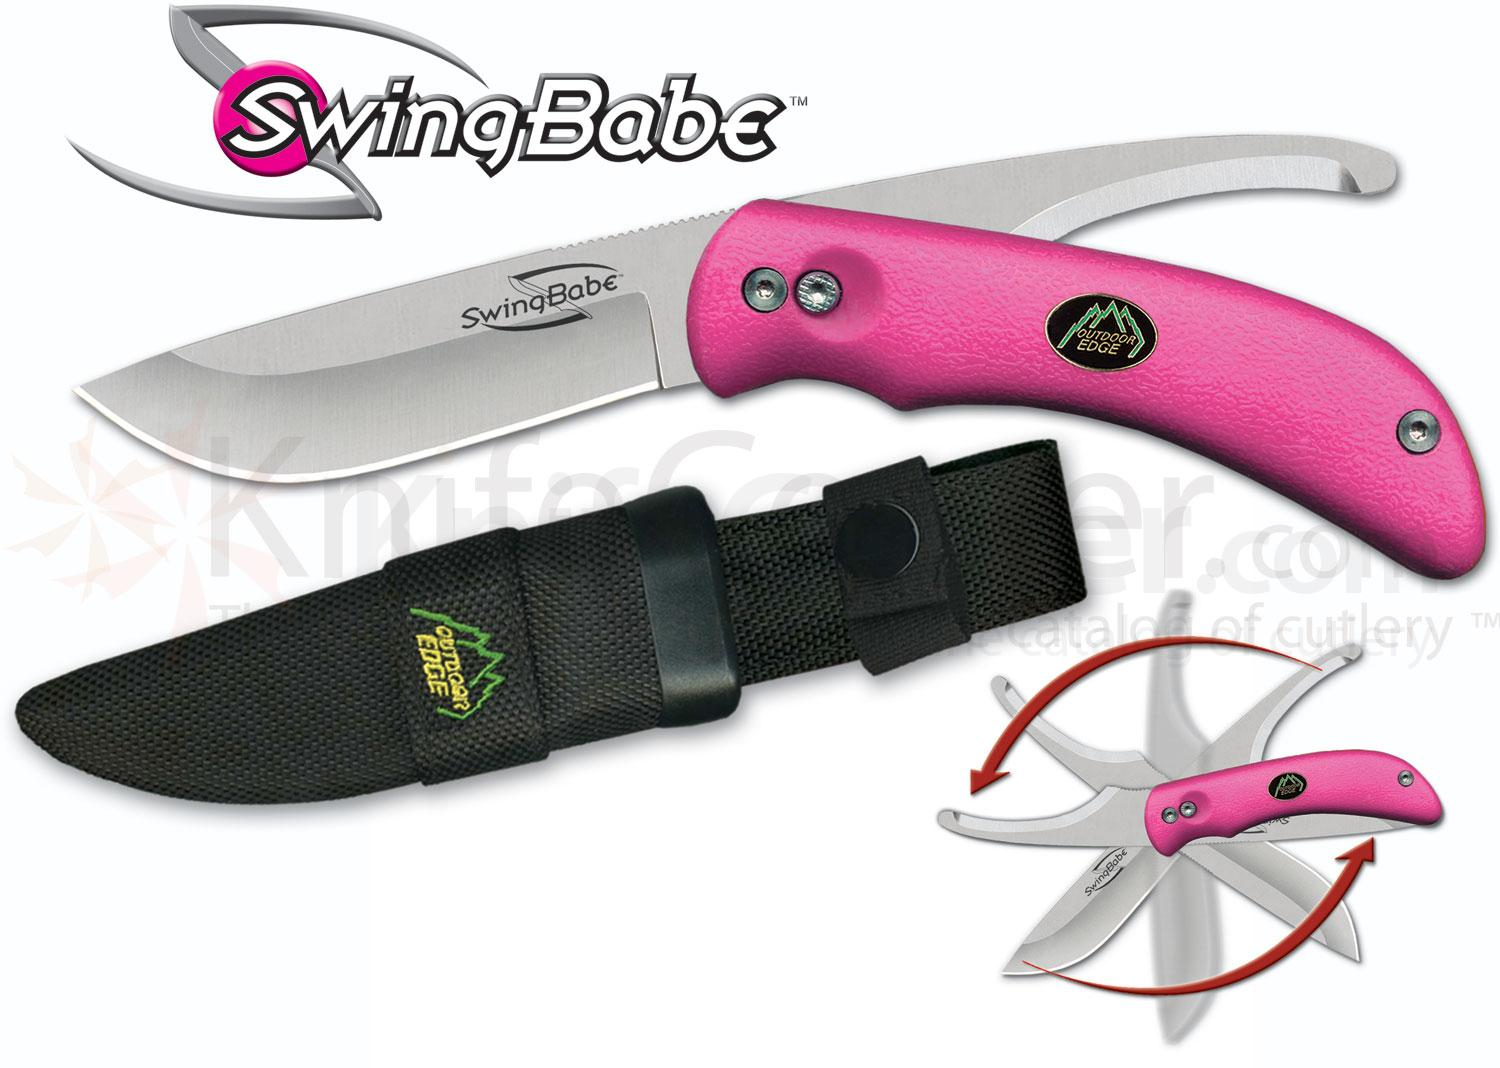 Outdoor Edge SwingBabe, Rotating 2-Blade Skinning/Gutting Knife Combo, Pink Kraton Handles